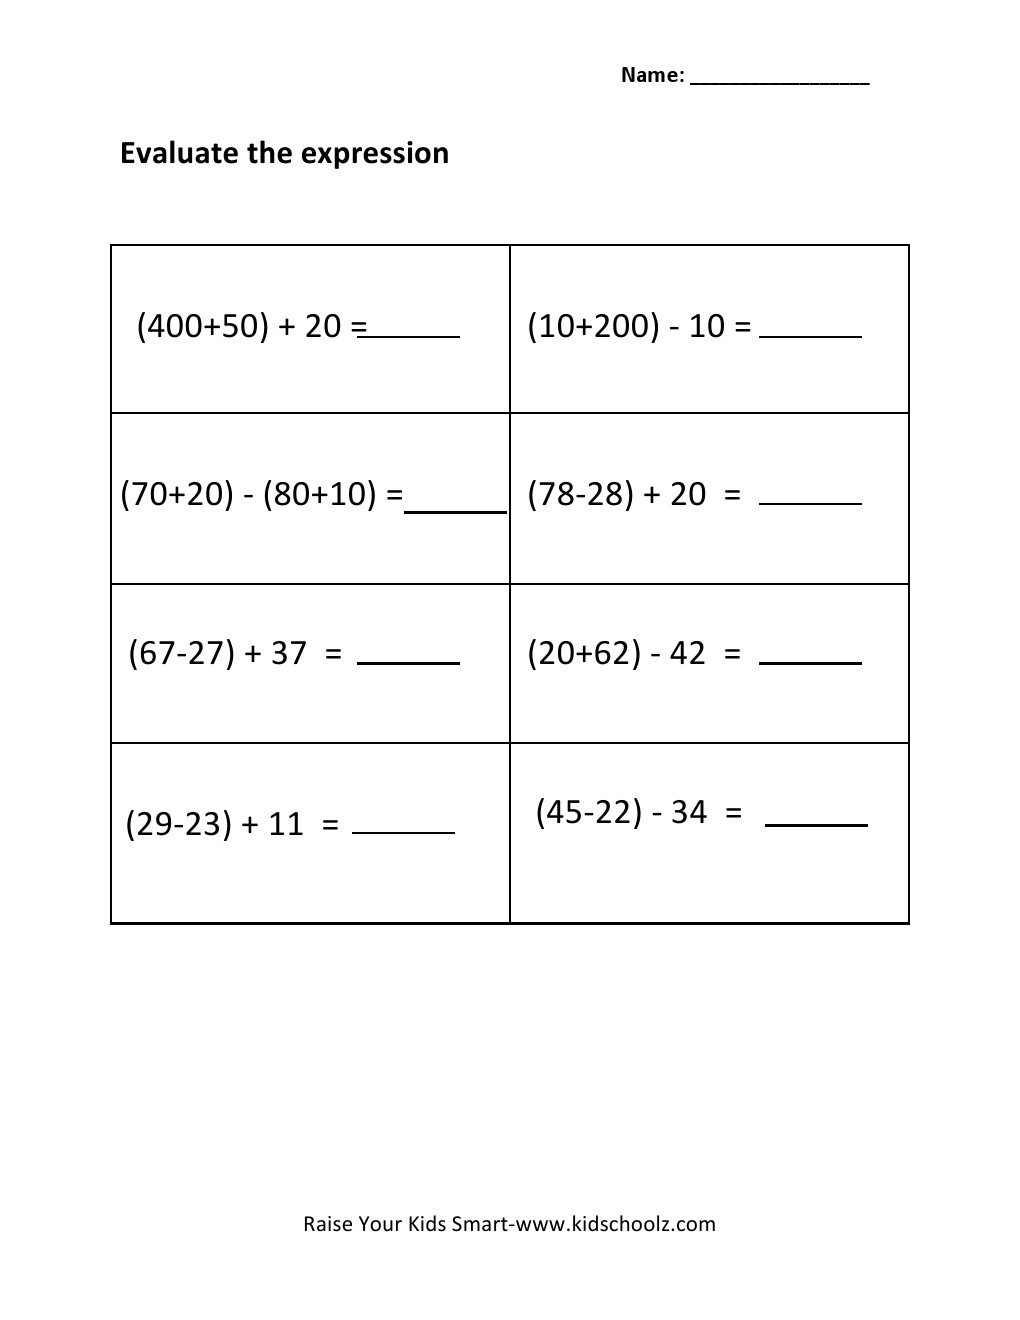 Printables Evaluating Algebraic Expressions Worksheets worksheets evaluate algebraic expressions worksheet laurenpsyk grade 3 evaluating 2 worksheet